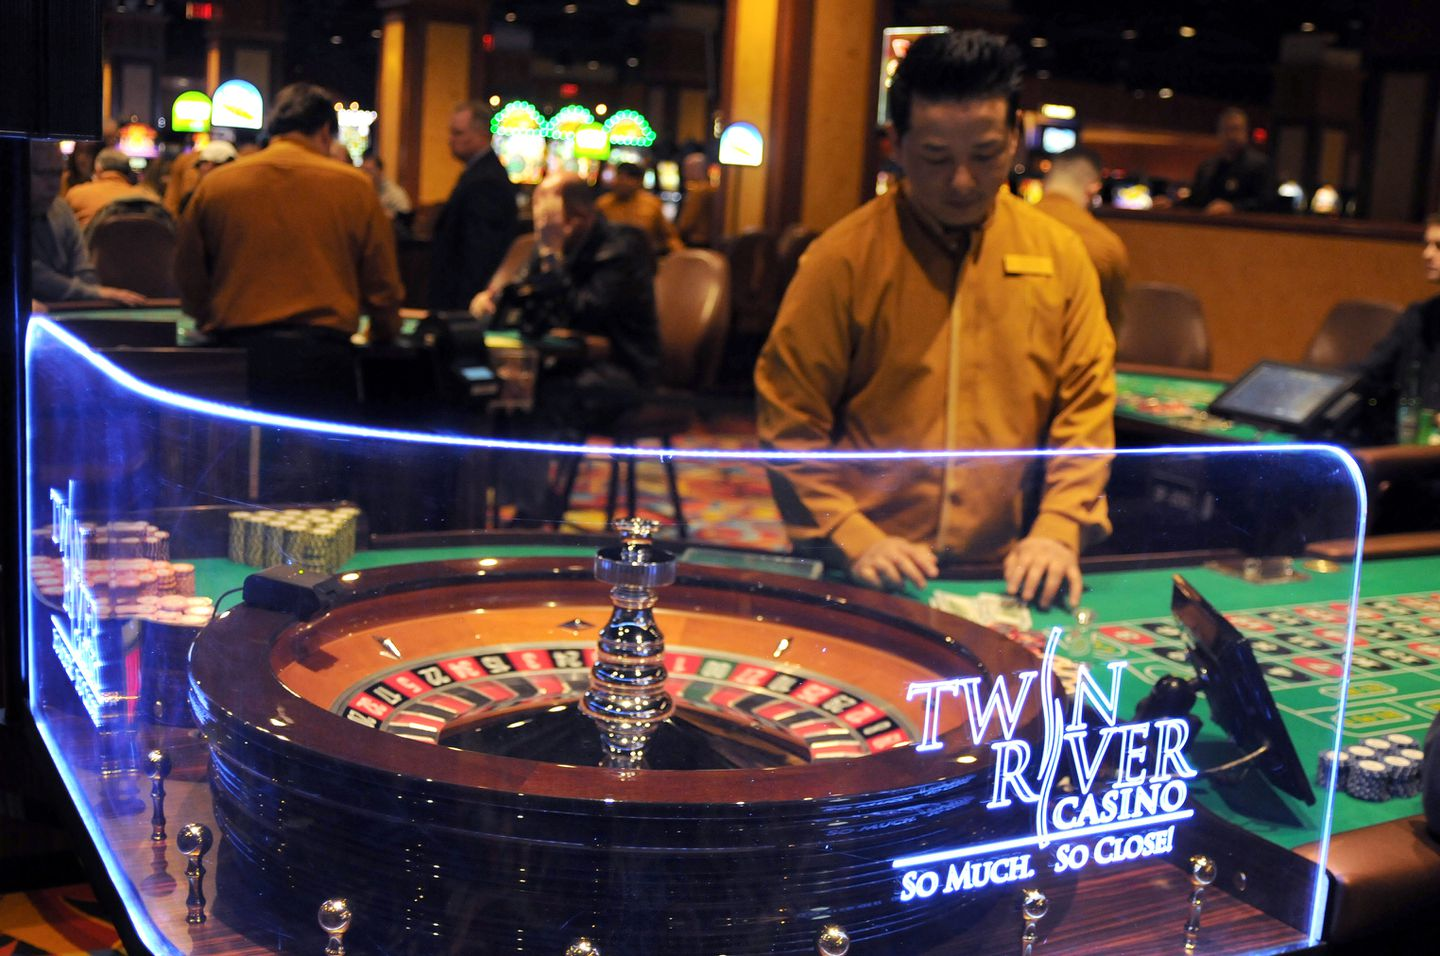 R.I. braces for revenue loss from Mass. casinos - The Boston Globe